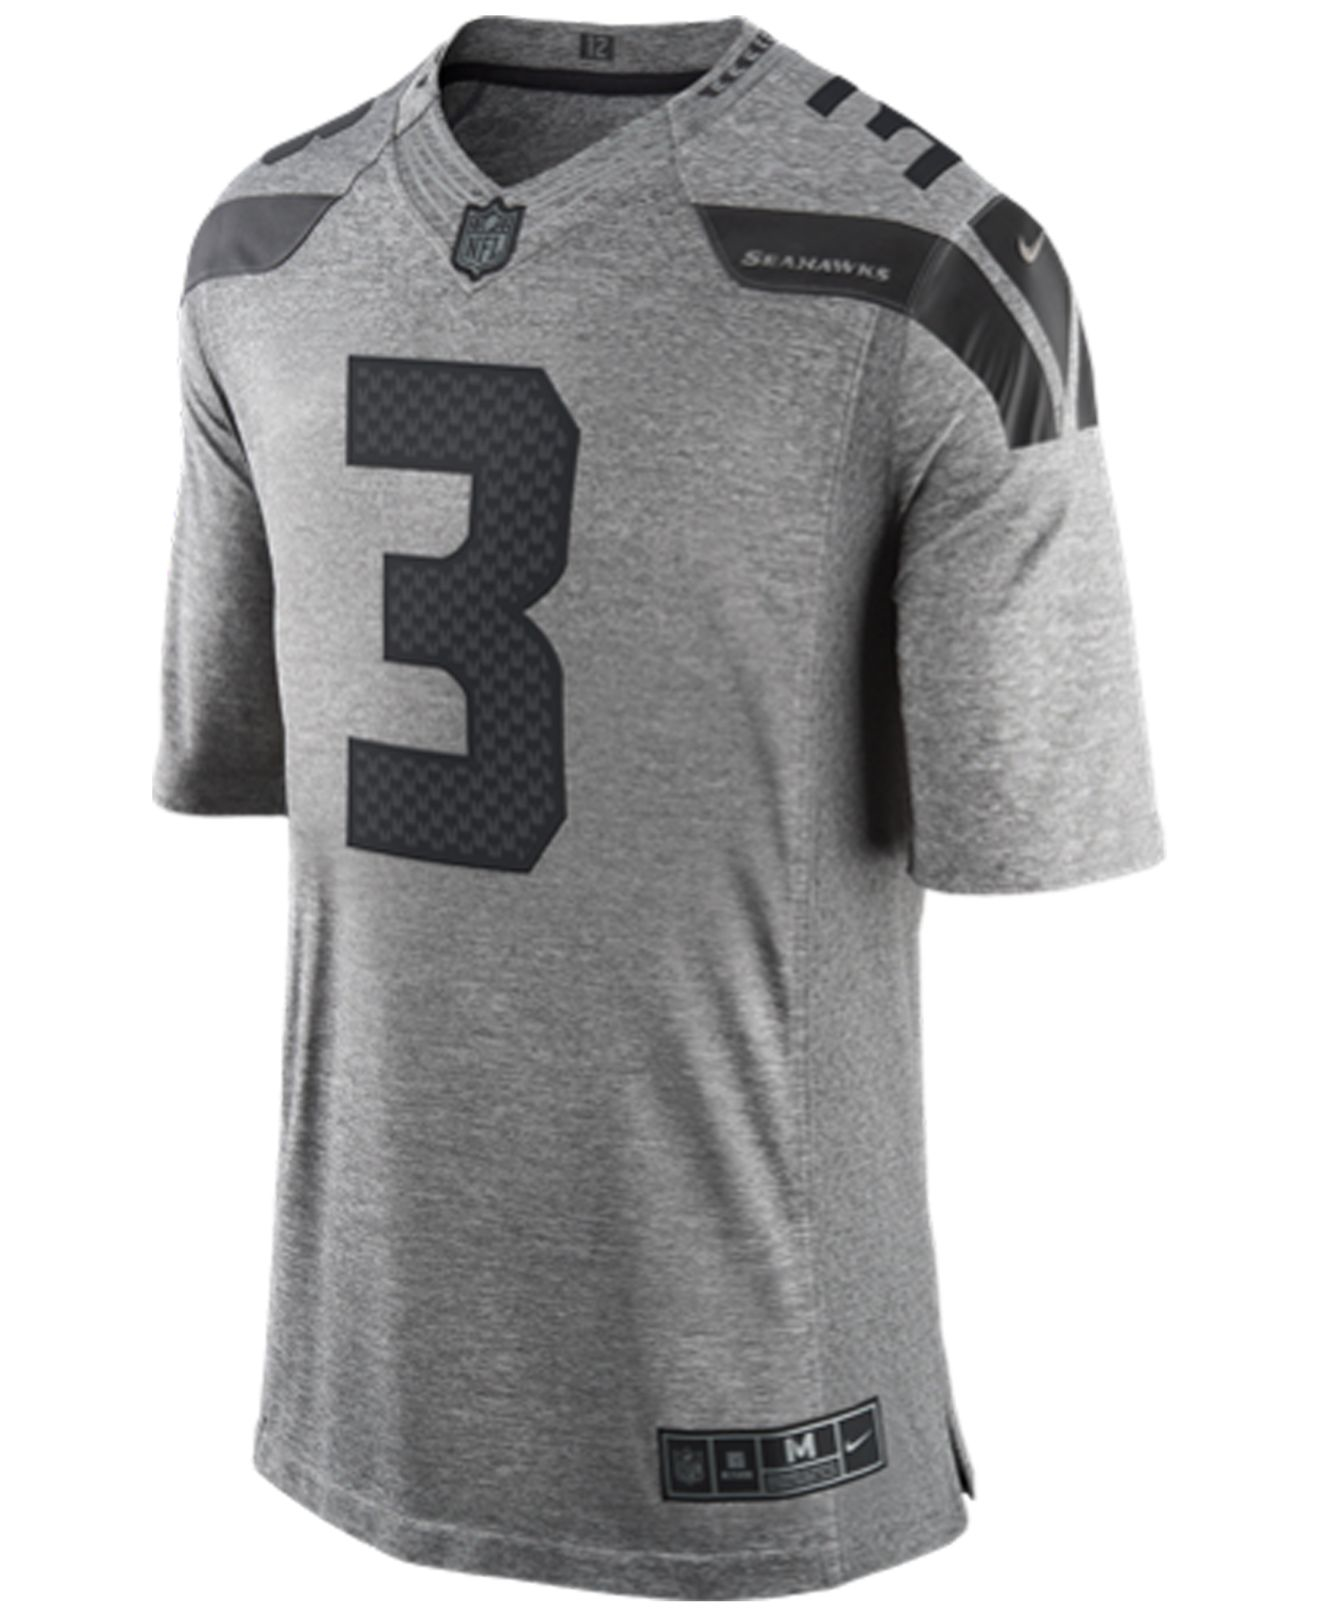 fan mens limited jersey 12 seattle seahawks gridiron gray nike youth game lights out grey super bowl xlix jersey seattle seahawks russell wilson 3